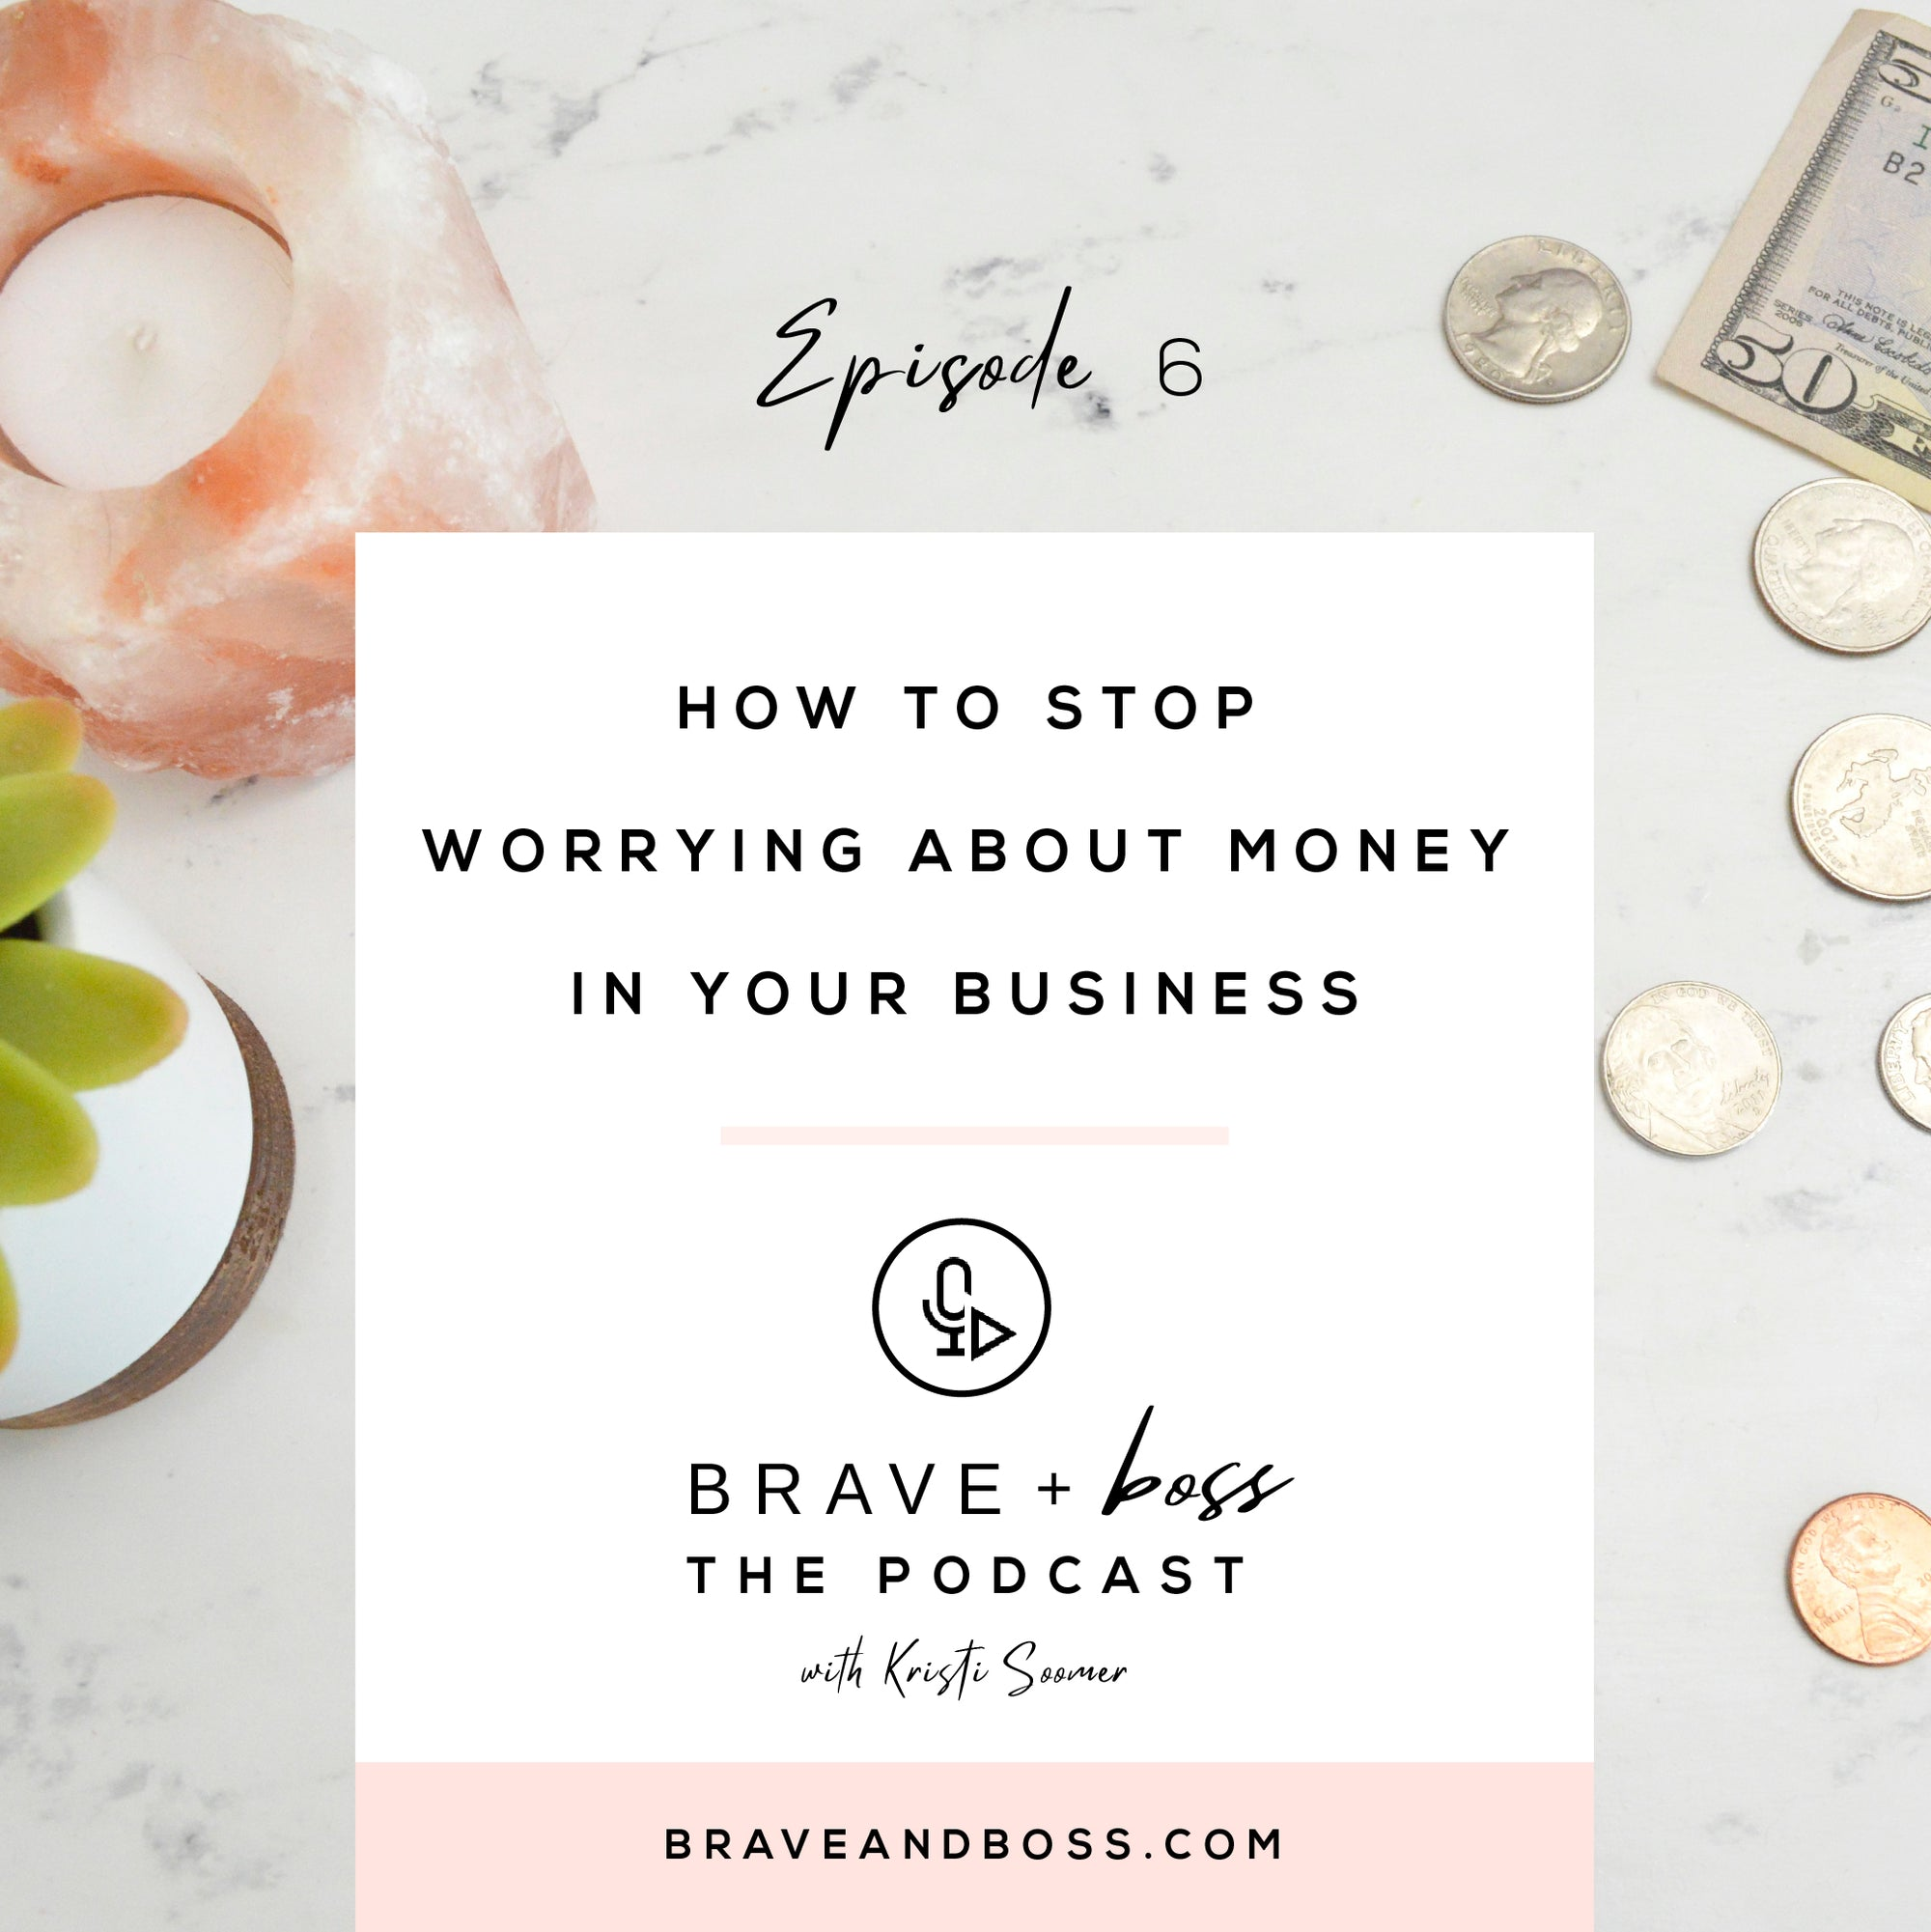 How to Stop Worrying About Money in your Business